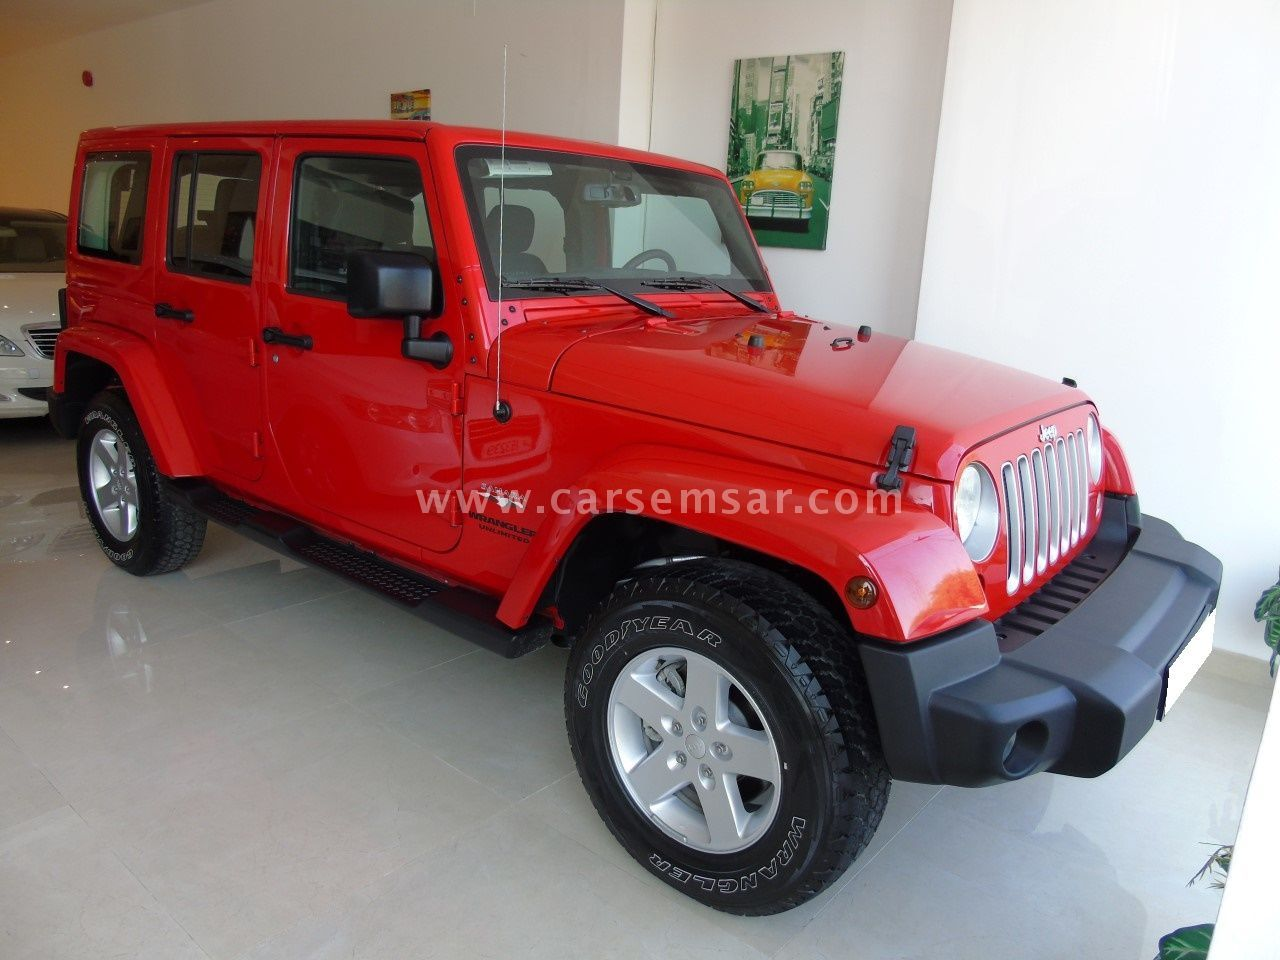 2016 jeep wrangler 3 8 unlimited sahara for sale in qatar new and used cars for sale in qatar. Black Bedroom Furniture Sets. Home Design Ideas